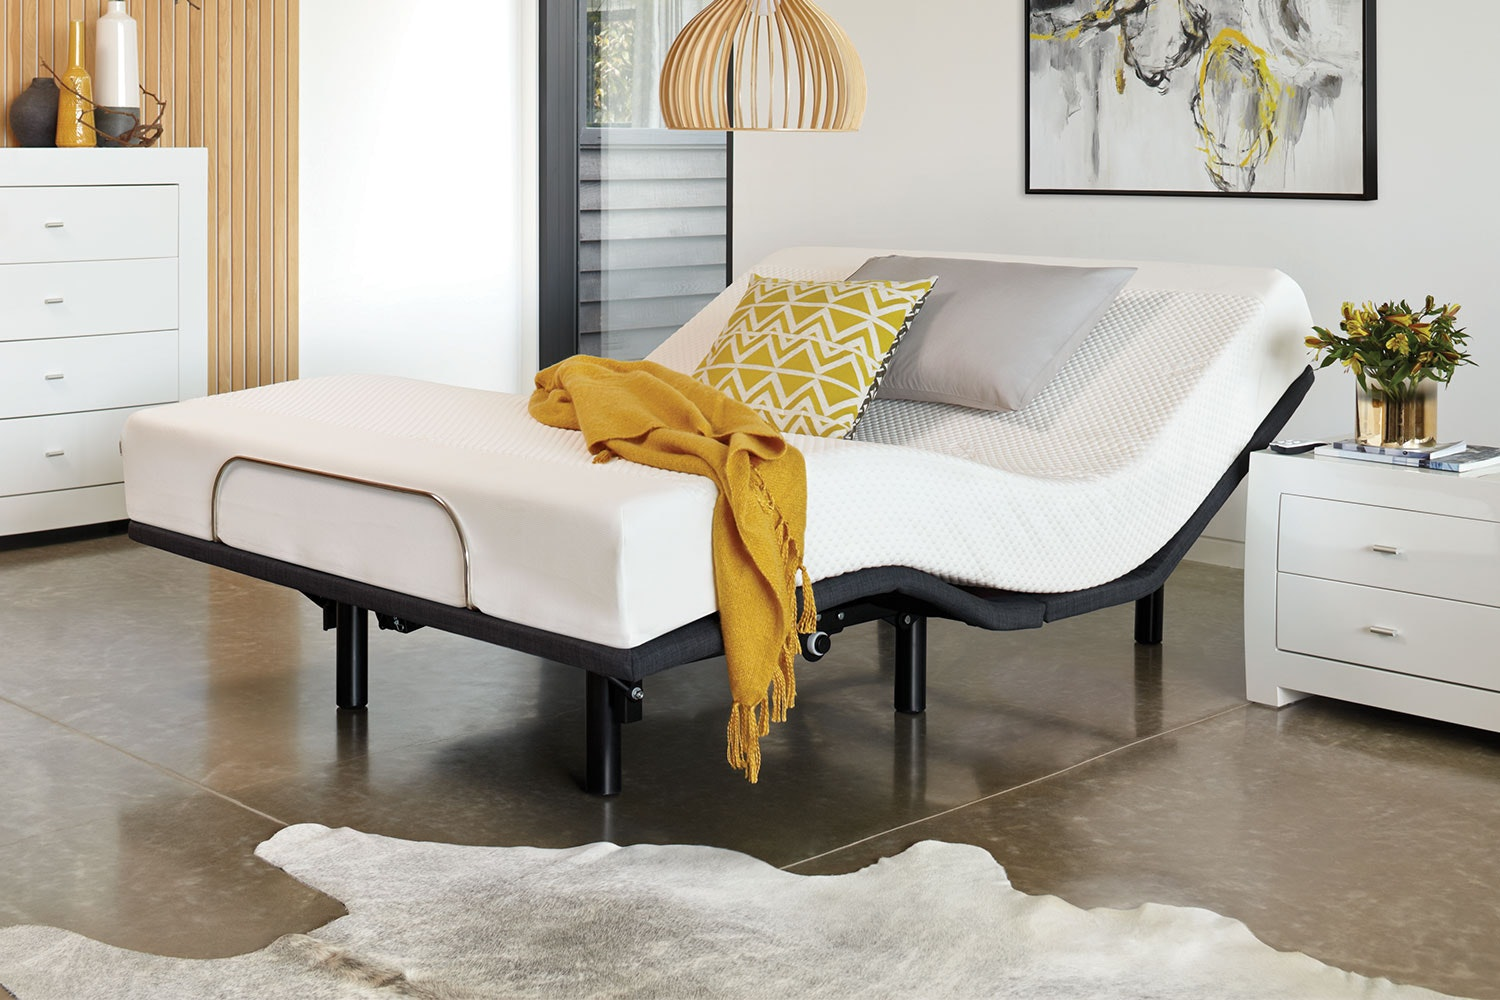 19cm Queen Mattress with Essential Adjustable Base by Tempur